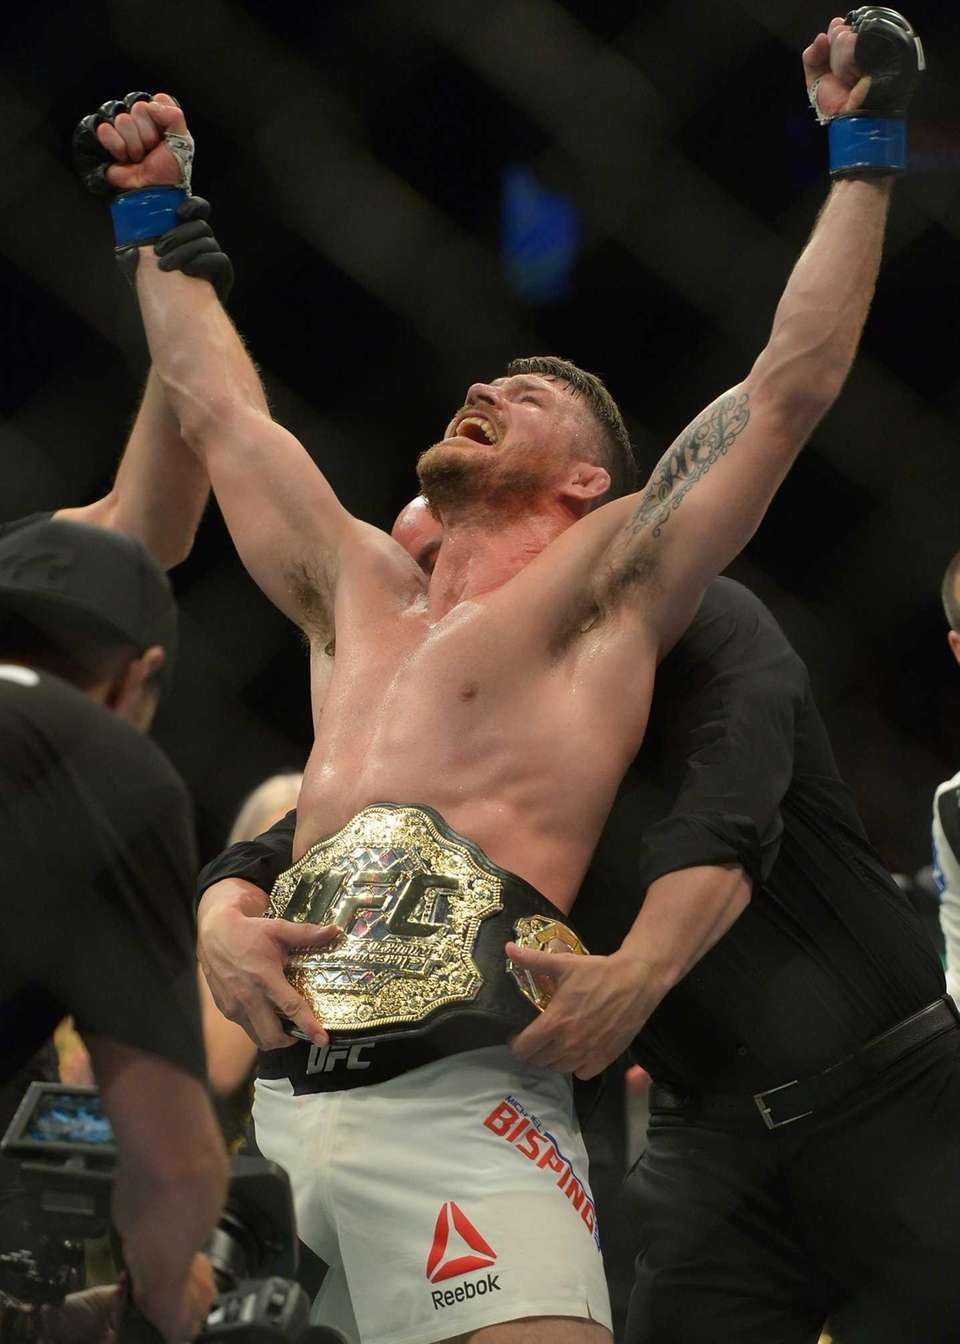 A veteran of the fight game, Michael Bisping